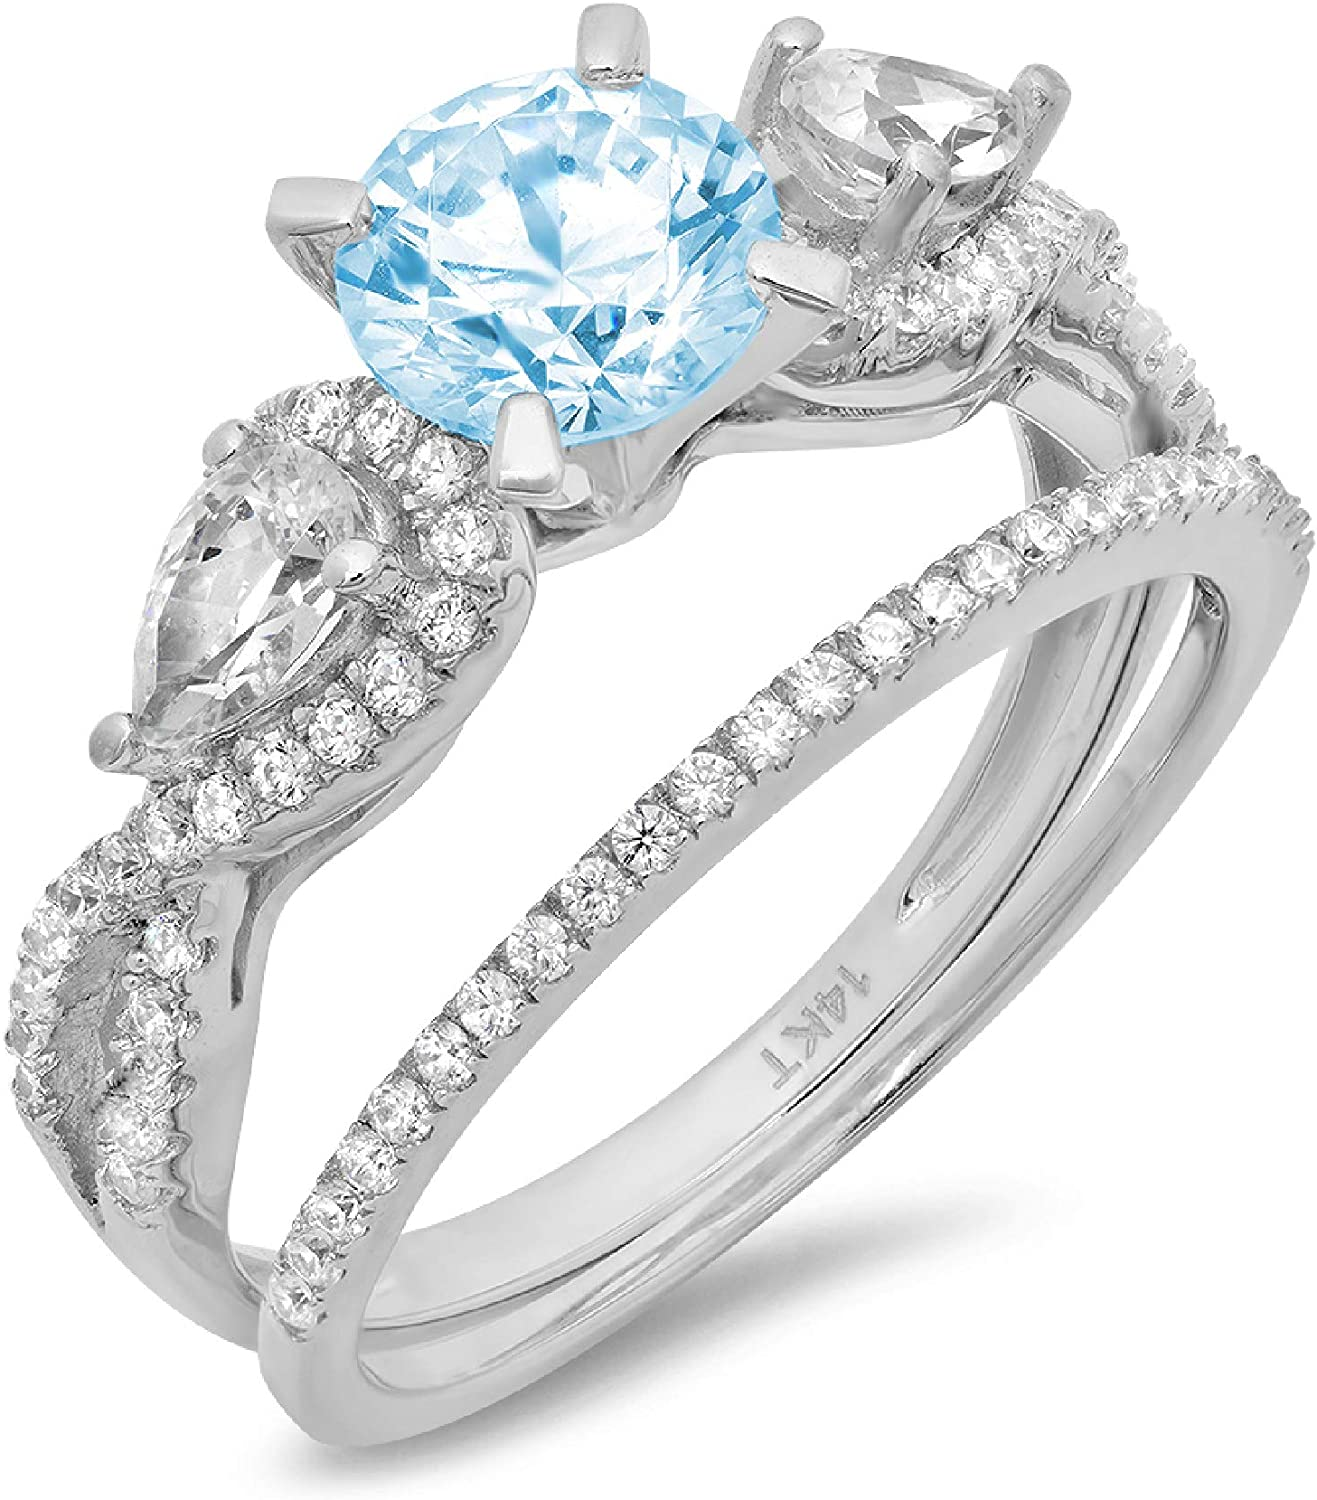 1.94ct Round Pear Cut Solitaire 3 stone With Accent VVS1 Ideal Aquamarine Blue Simulated Diamond CZ Engagement Promise Designer Anniversary Wedding Bridal ring band set 14k White Gold